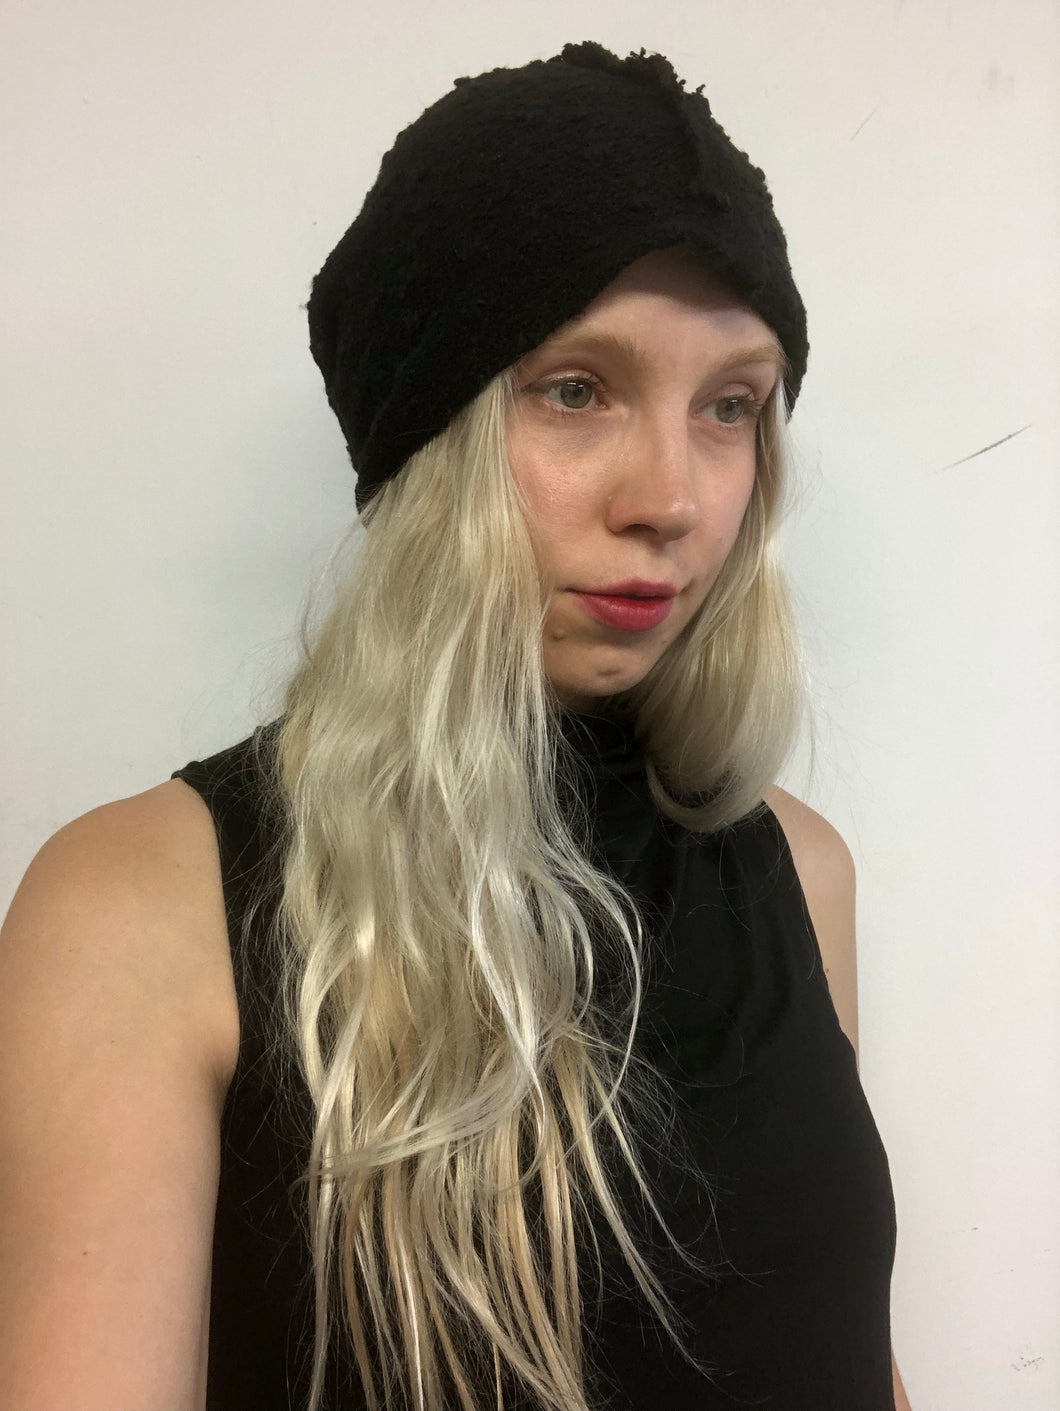 Sample Sale: Slouchy Toque in Cotton/Linen Boucle (One Size)